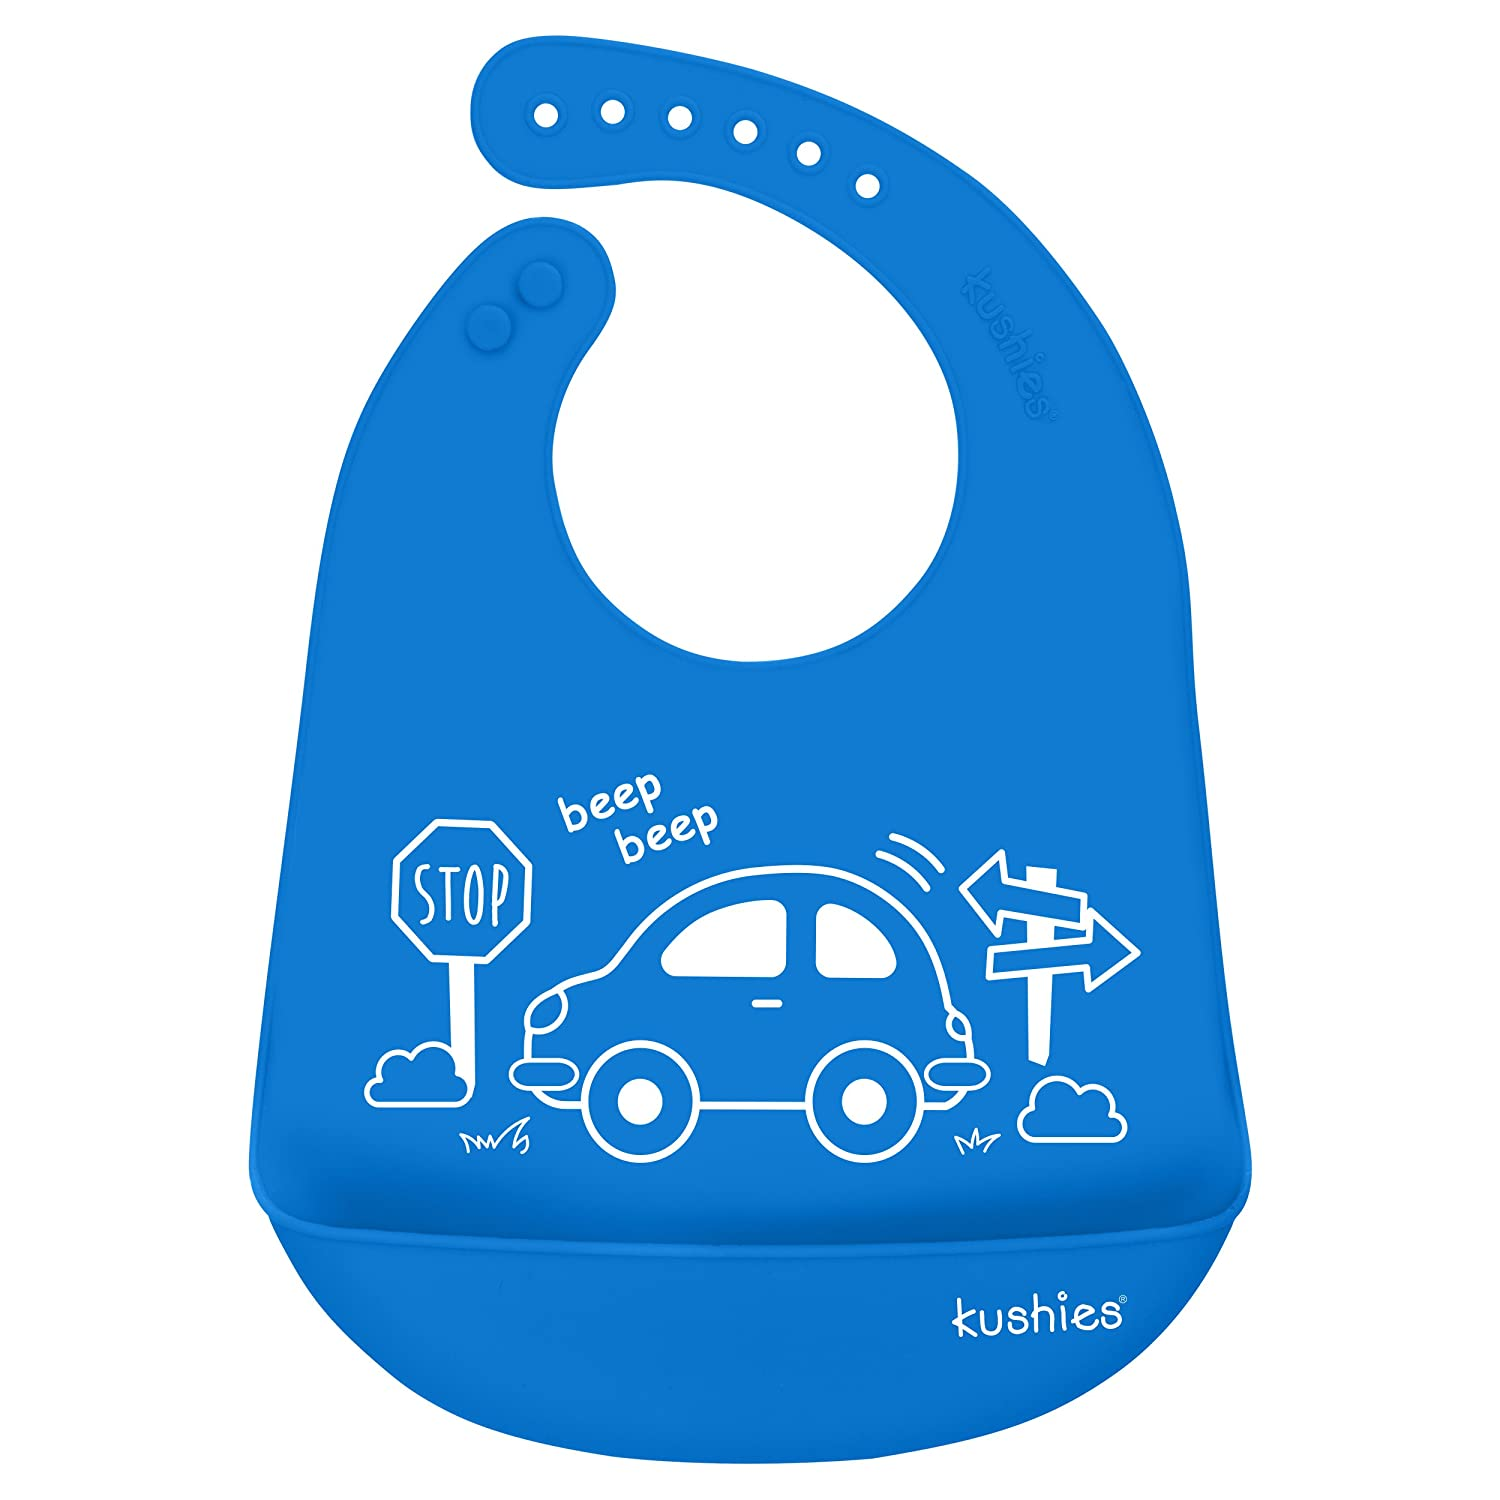 Kushies Silicatch Super Soft Silicone Waterproof Feeding Bib with Catch All/Crumb Catcher, Azure Blue, 6m + Kushies Baby B306-B01